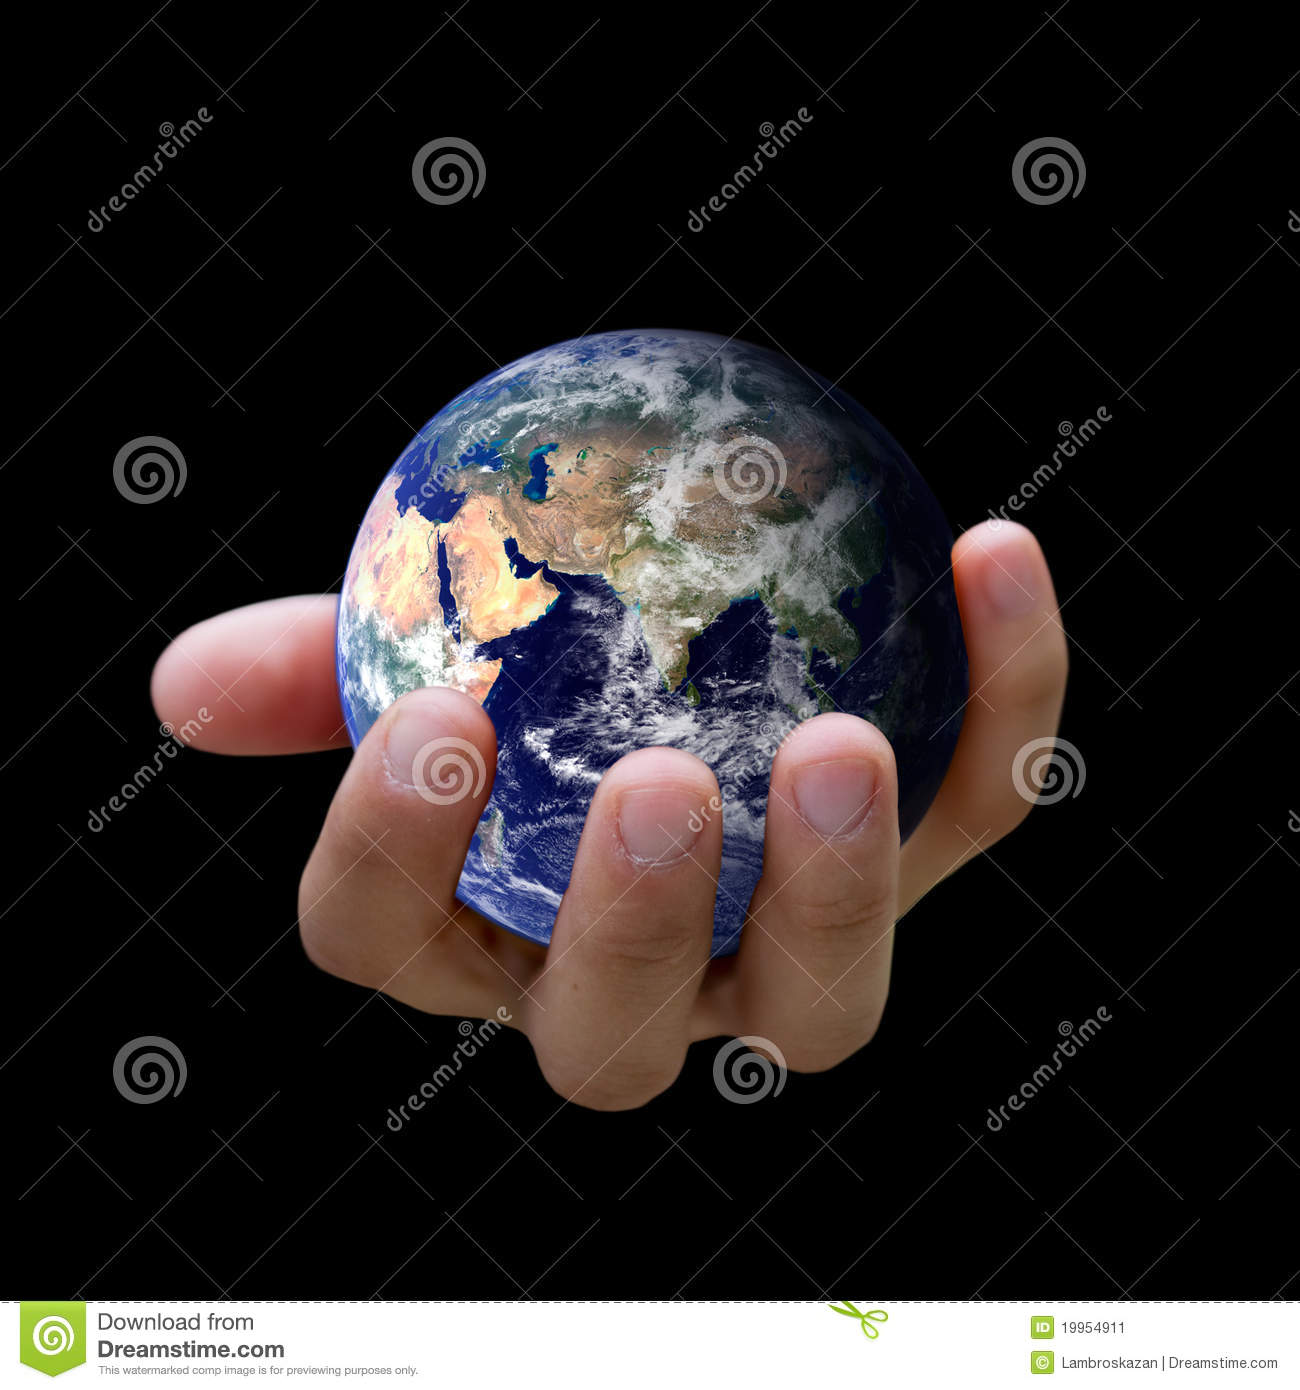 it s in your hands holding the earth stock image image of rh dreamstime com hand holding earth hand holding heart picture